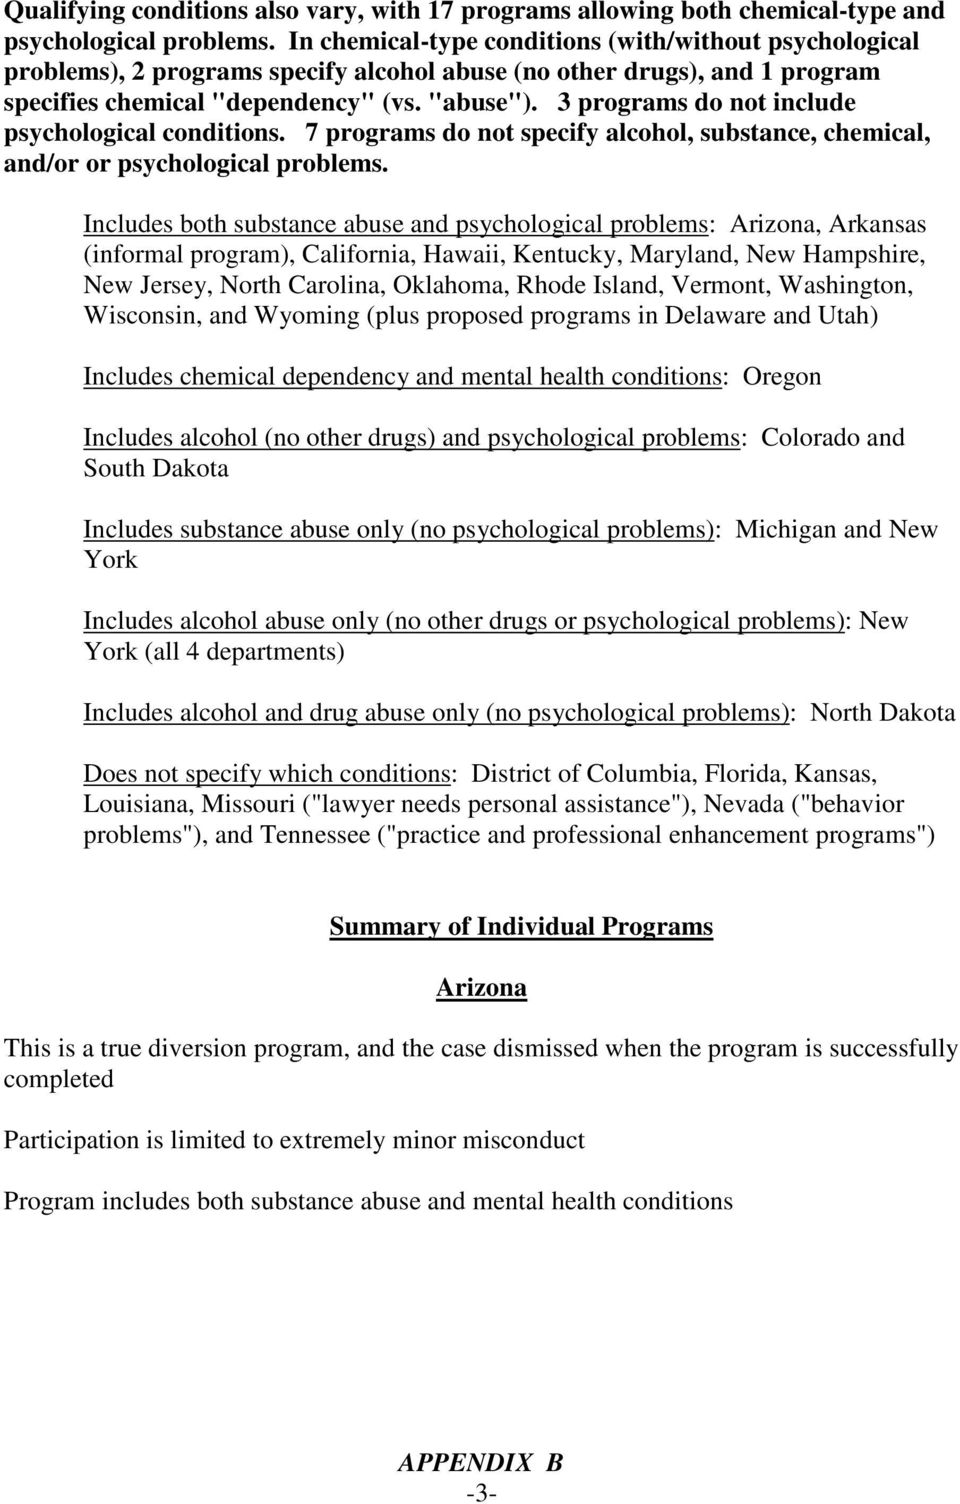 3 programs do not include psychological conditions. 7 programs do not specify alcohol, substance, chemical, and/or or psychological problems.